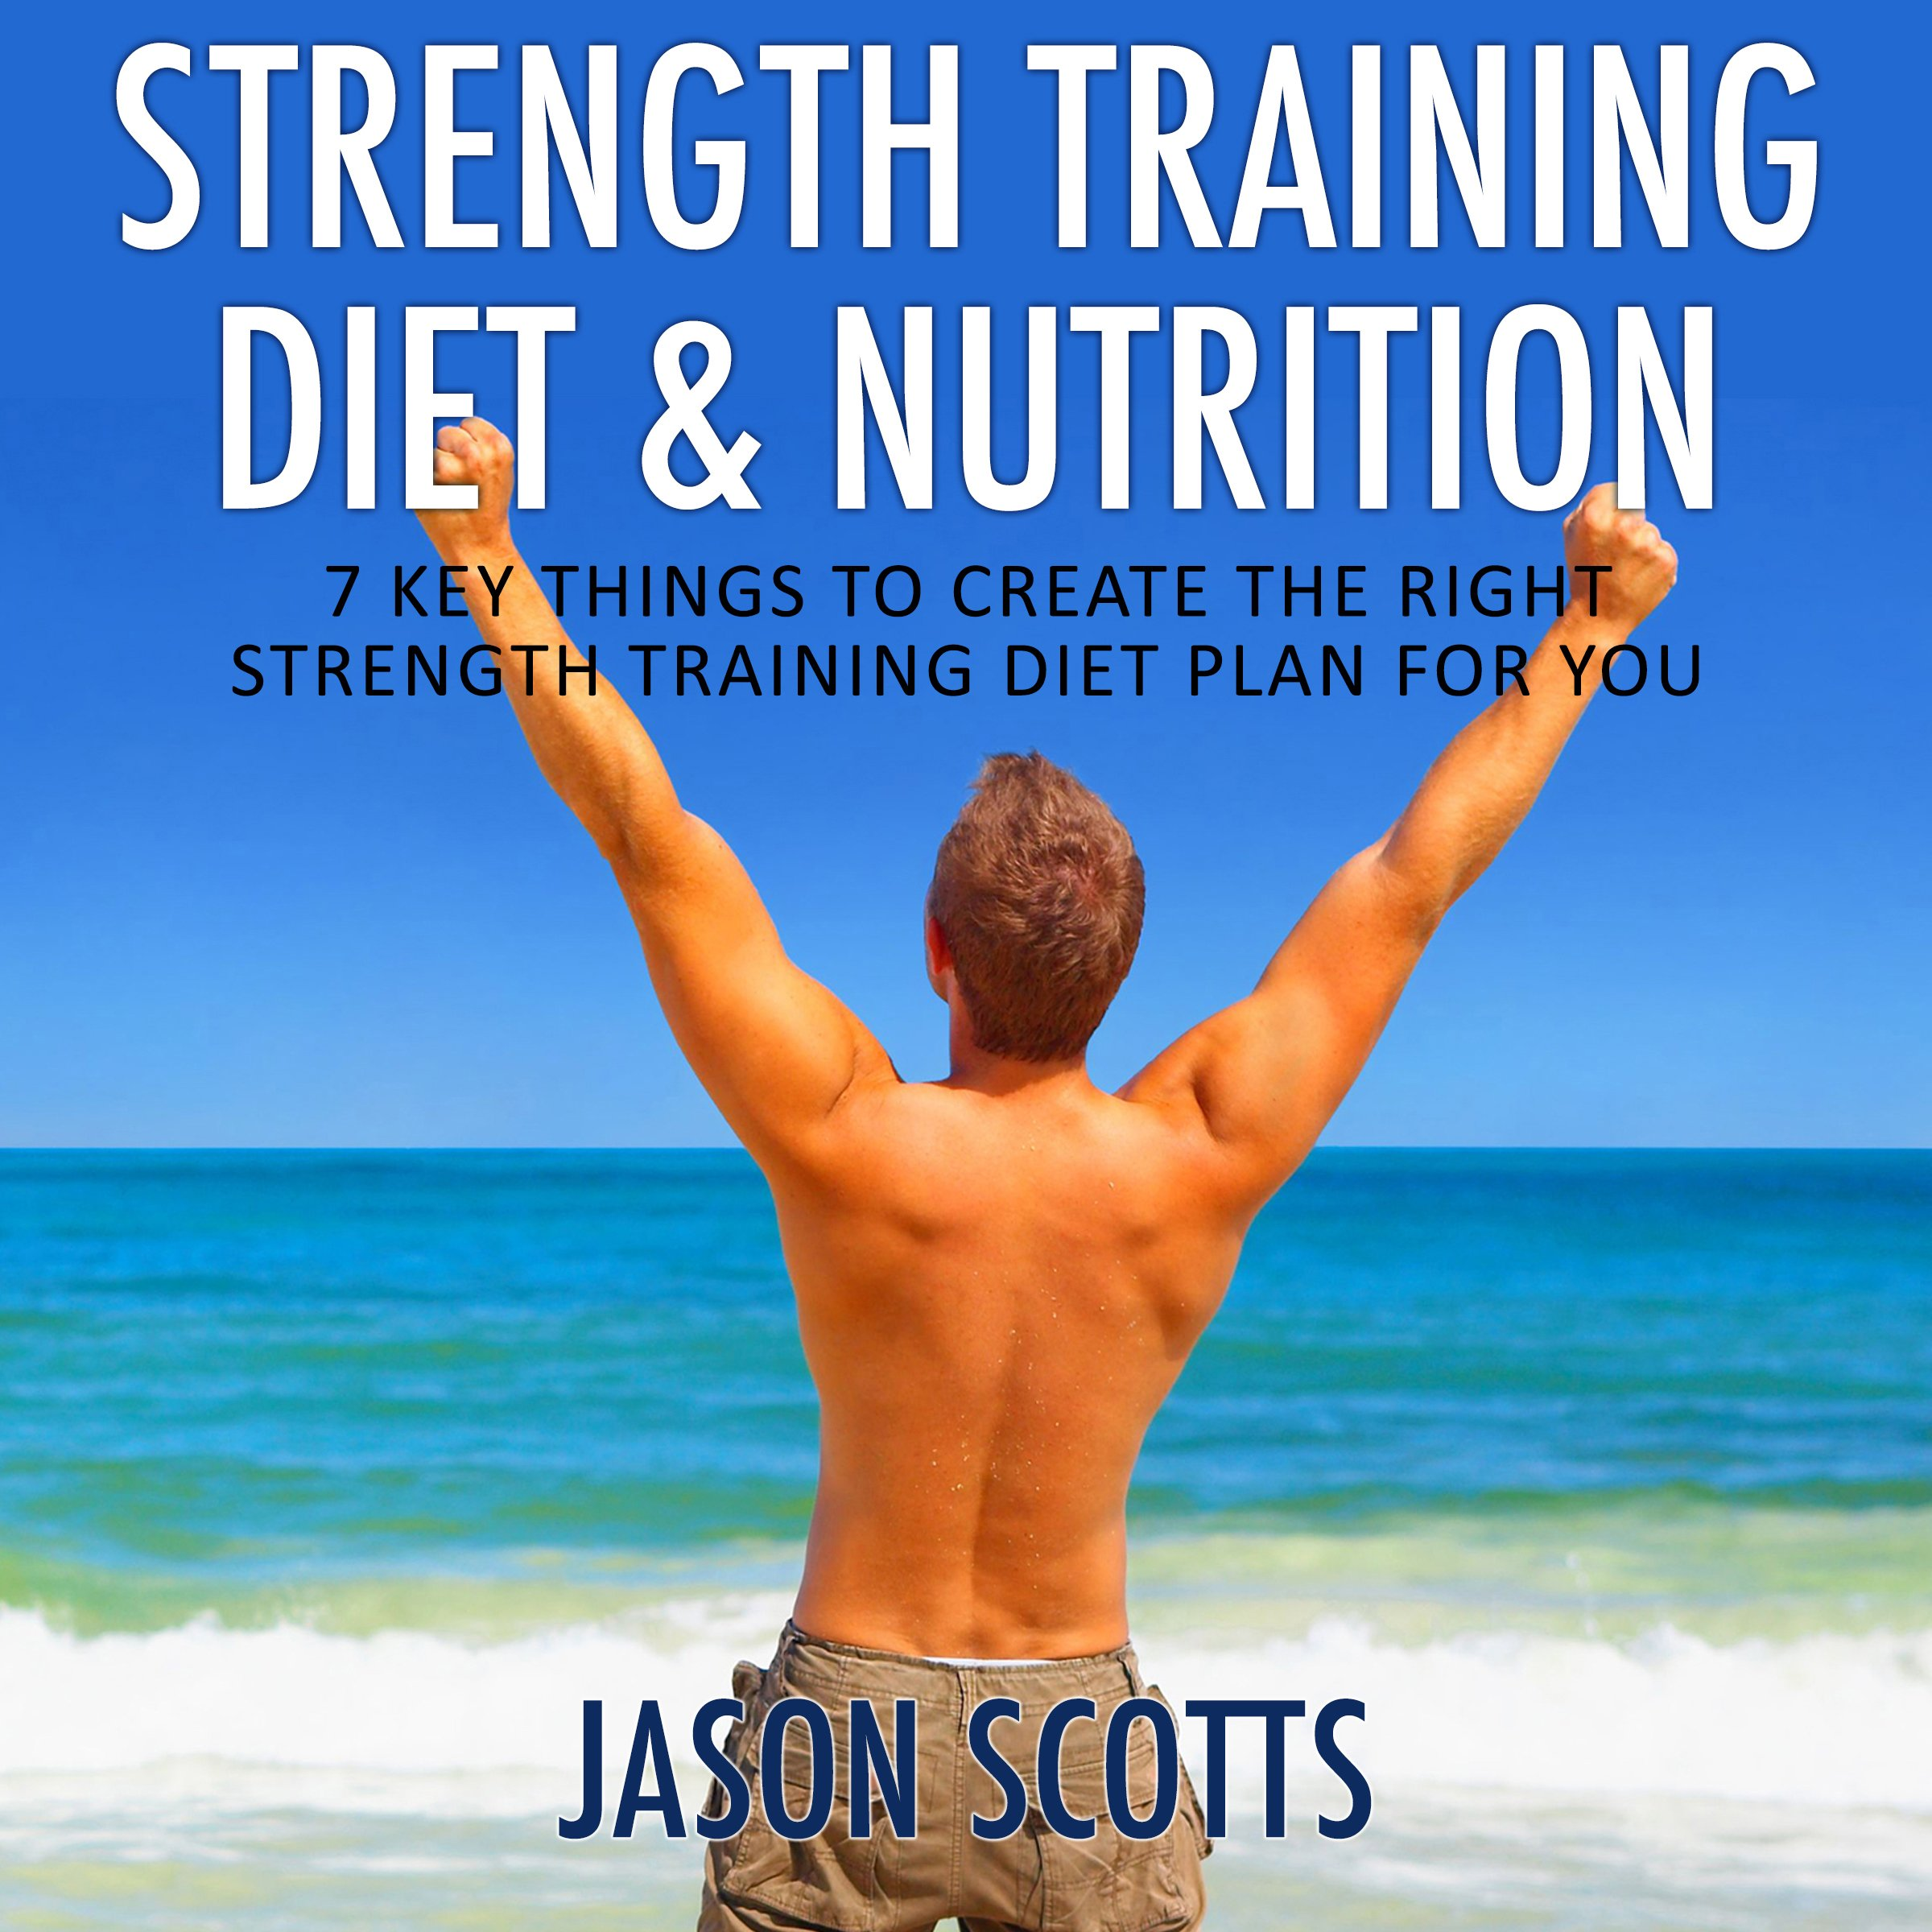 Image OfStrength Training Diet & Nutrition: 7 Key Things To Create The Right Strength Training Diet Plan For You (Ultimate How To ...